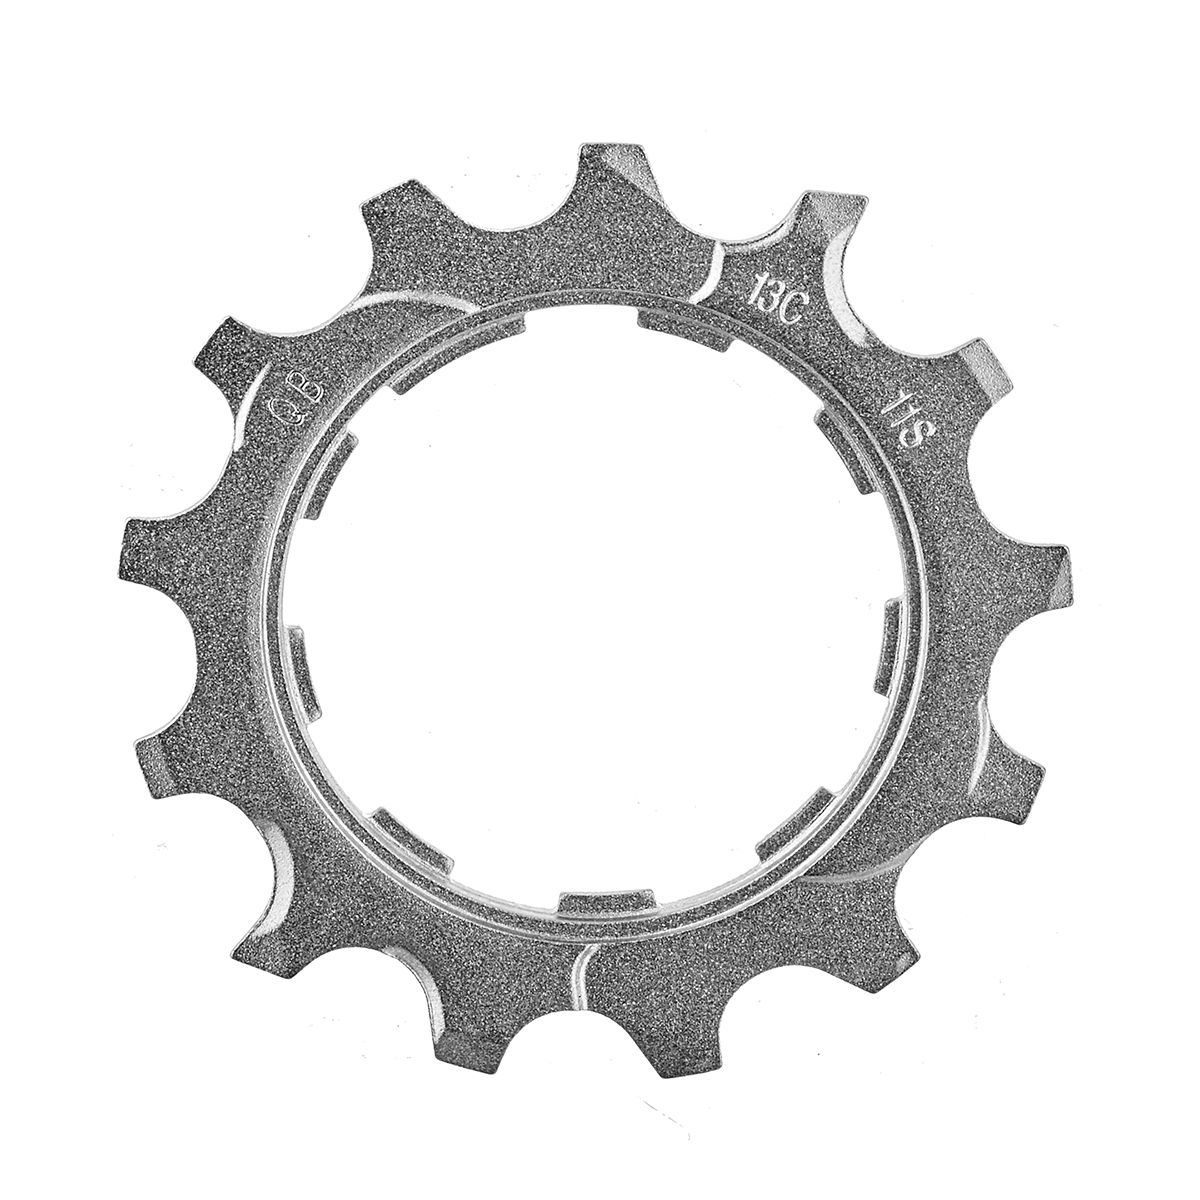 Replacement sprocket for XT CS-M8000 11-speed cassette